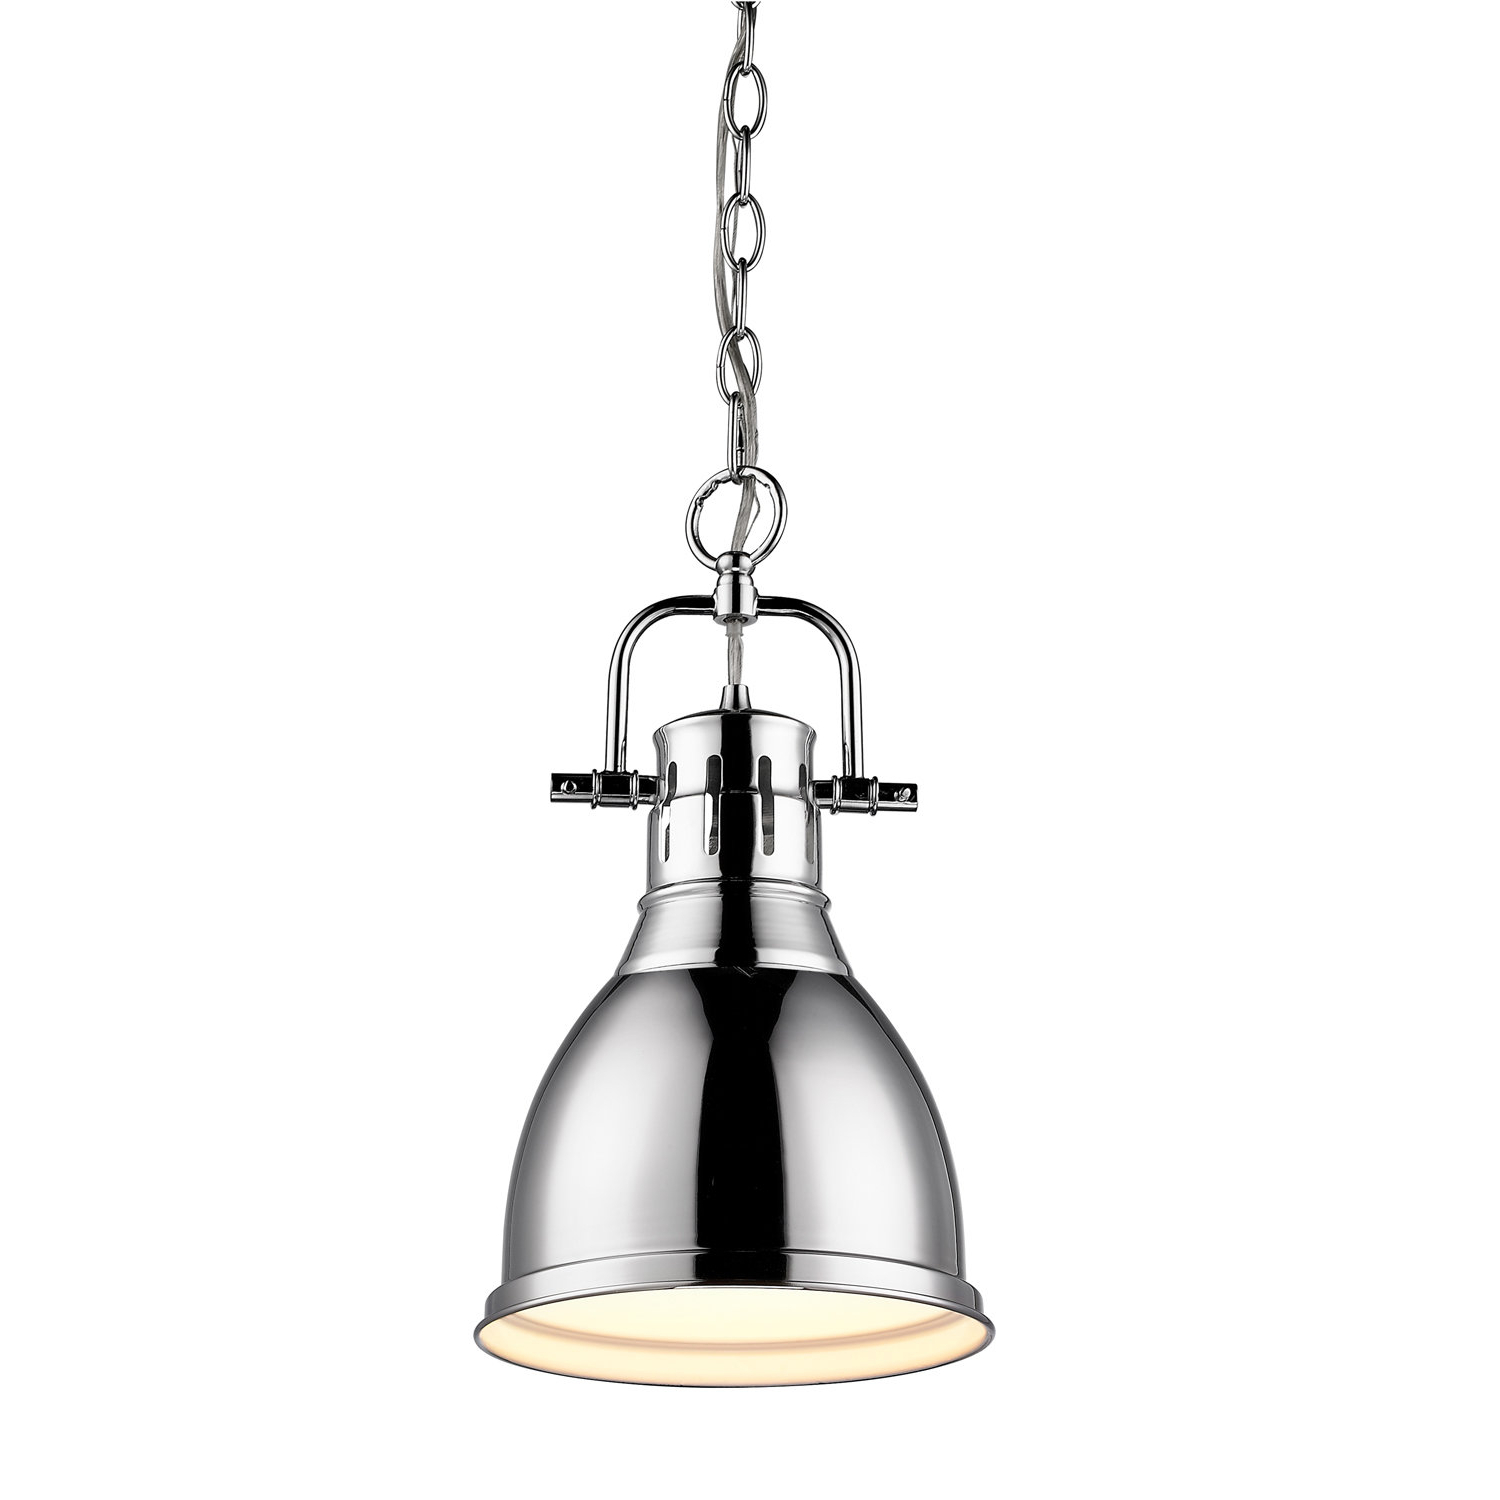 Beachcrest Home Bowdoinham 1 Light Single Dome Pendant With Most Current Sussex 1 Light Single Geometric Pendants (Gallery 7 of 20)